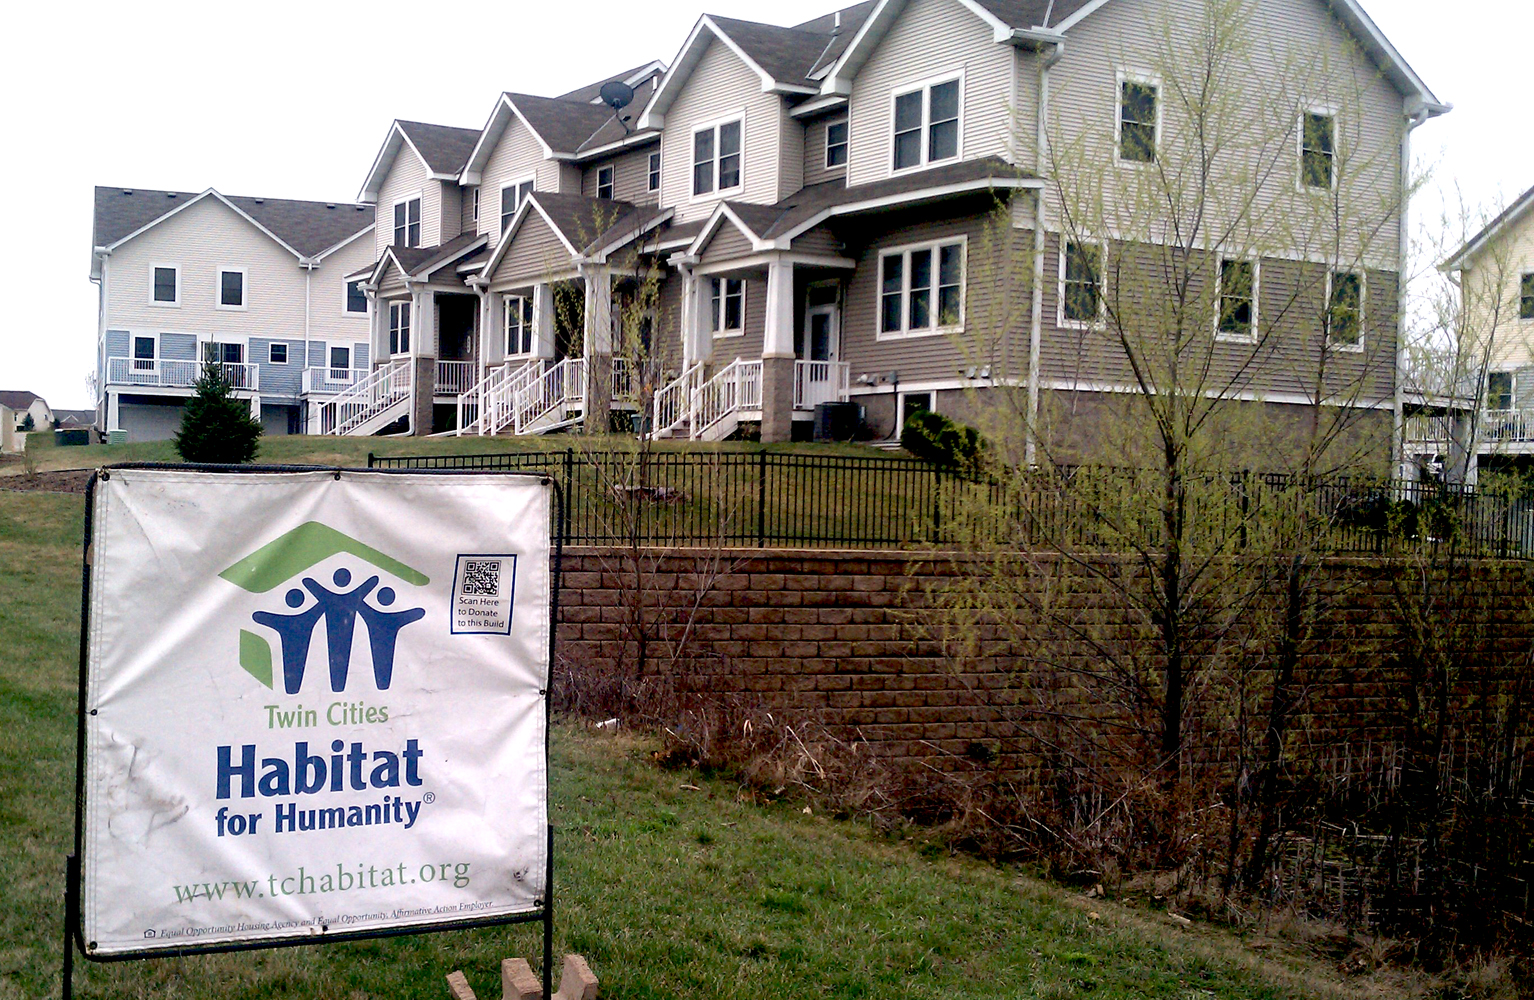 Tc habitat for humanity welcomes its 900th family into a home homesmsp for Construction habitat